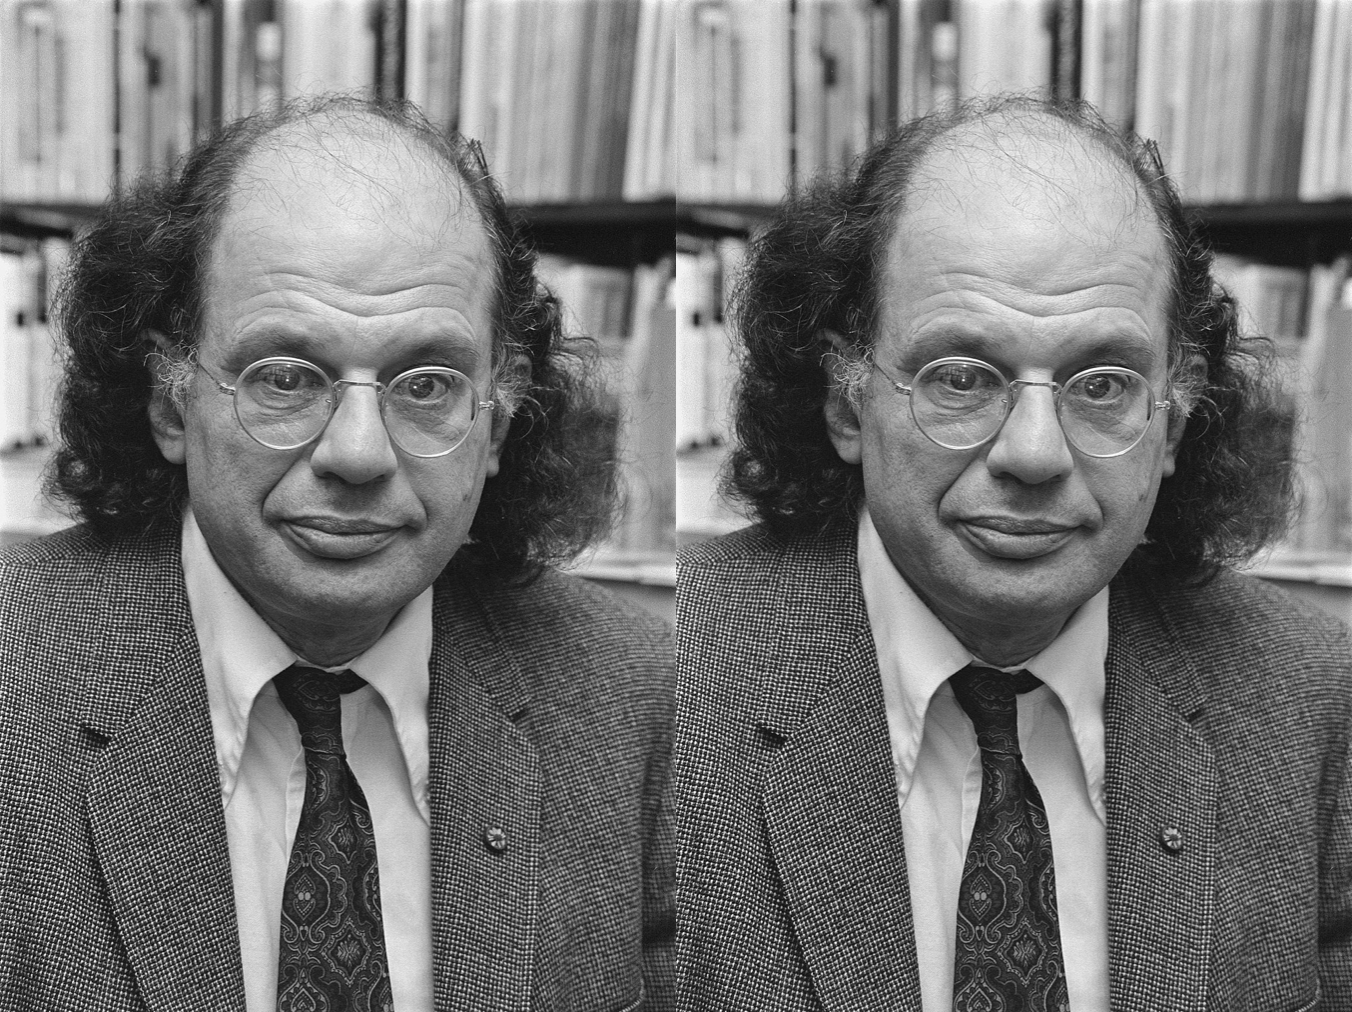 Black and white photograph of Allen Ginsberg in his later years